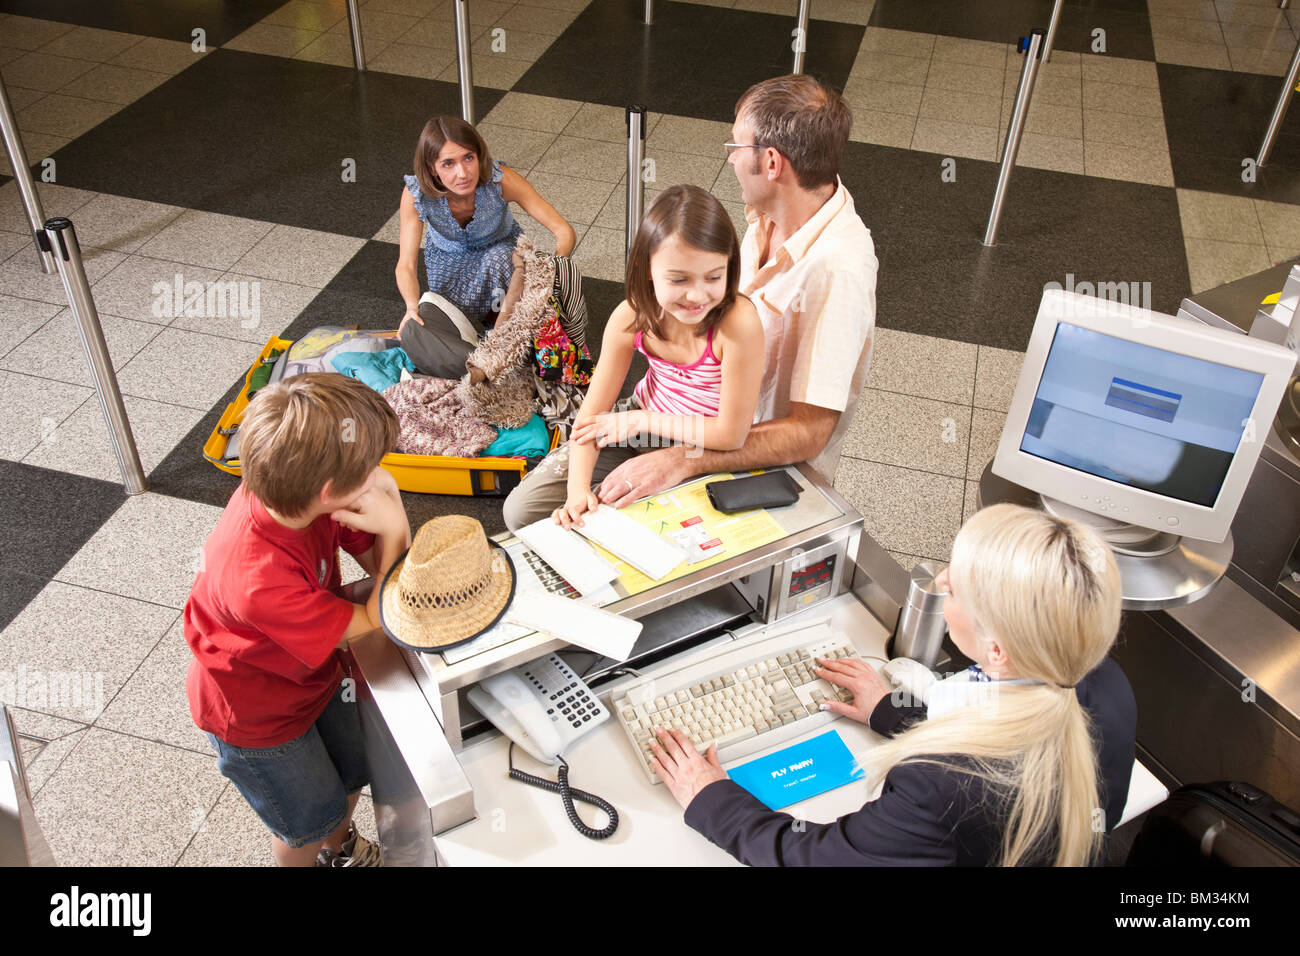 Mother checkin suitcase for vouchers - Stock Image